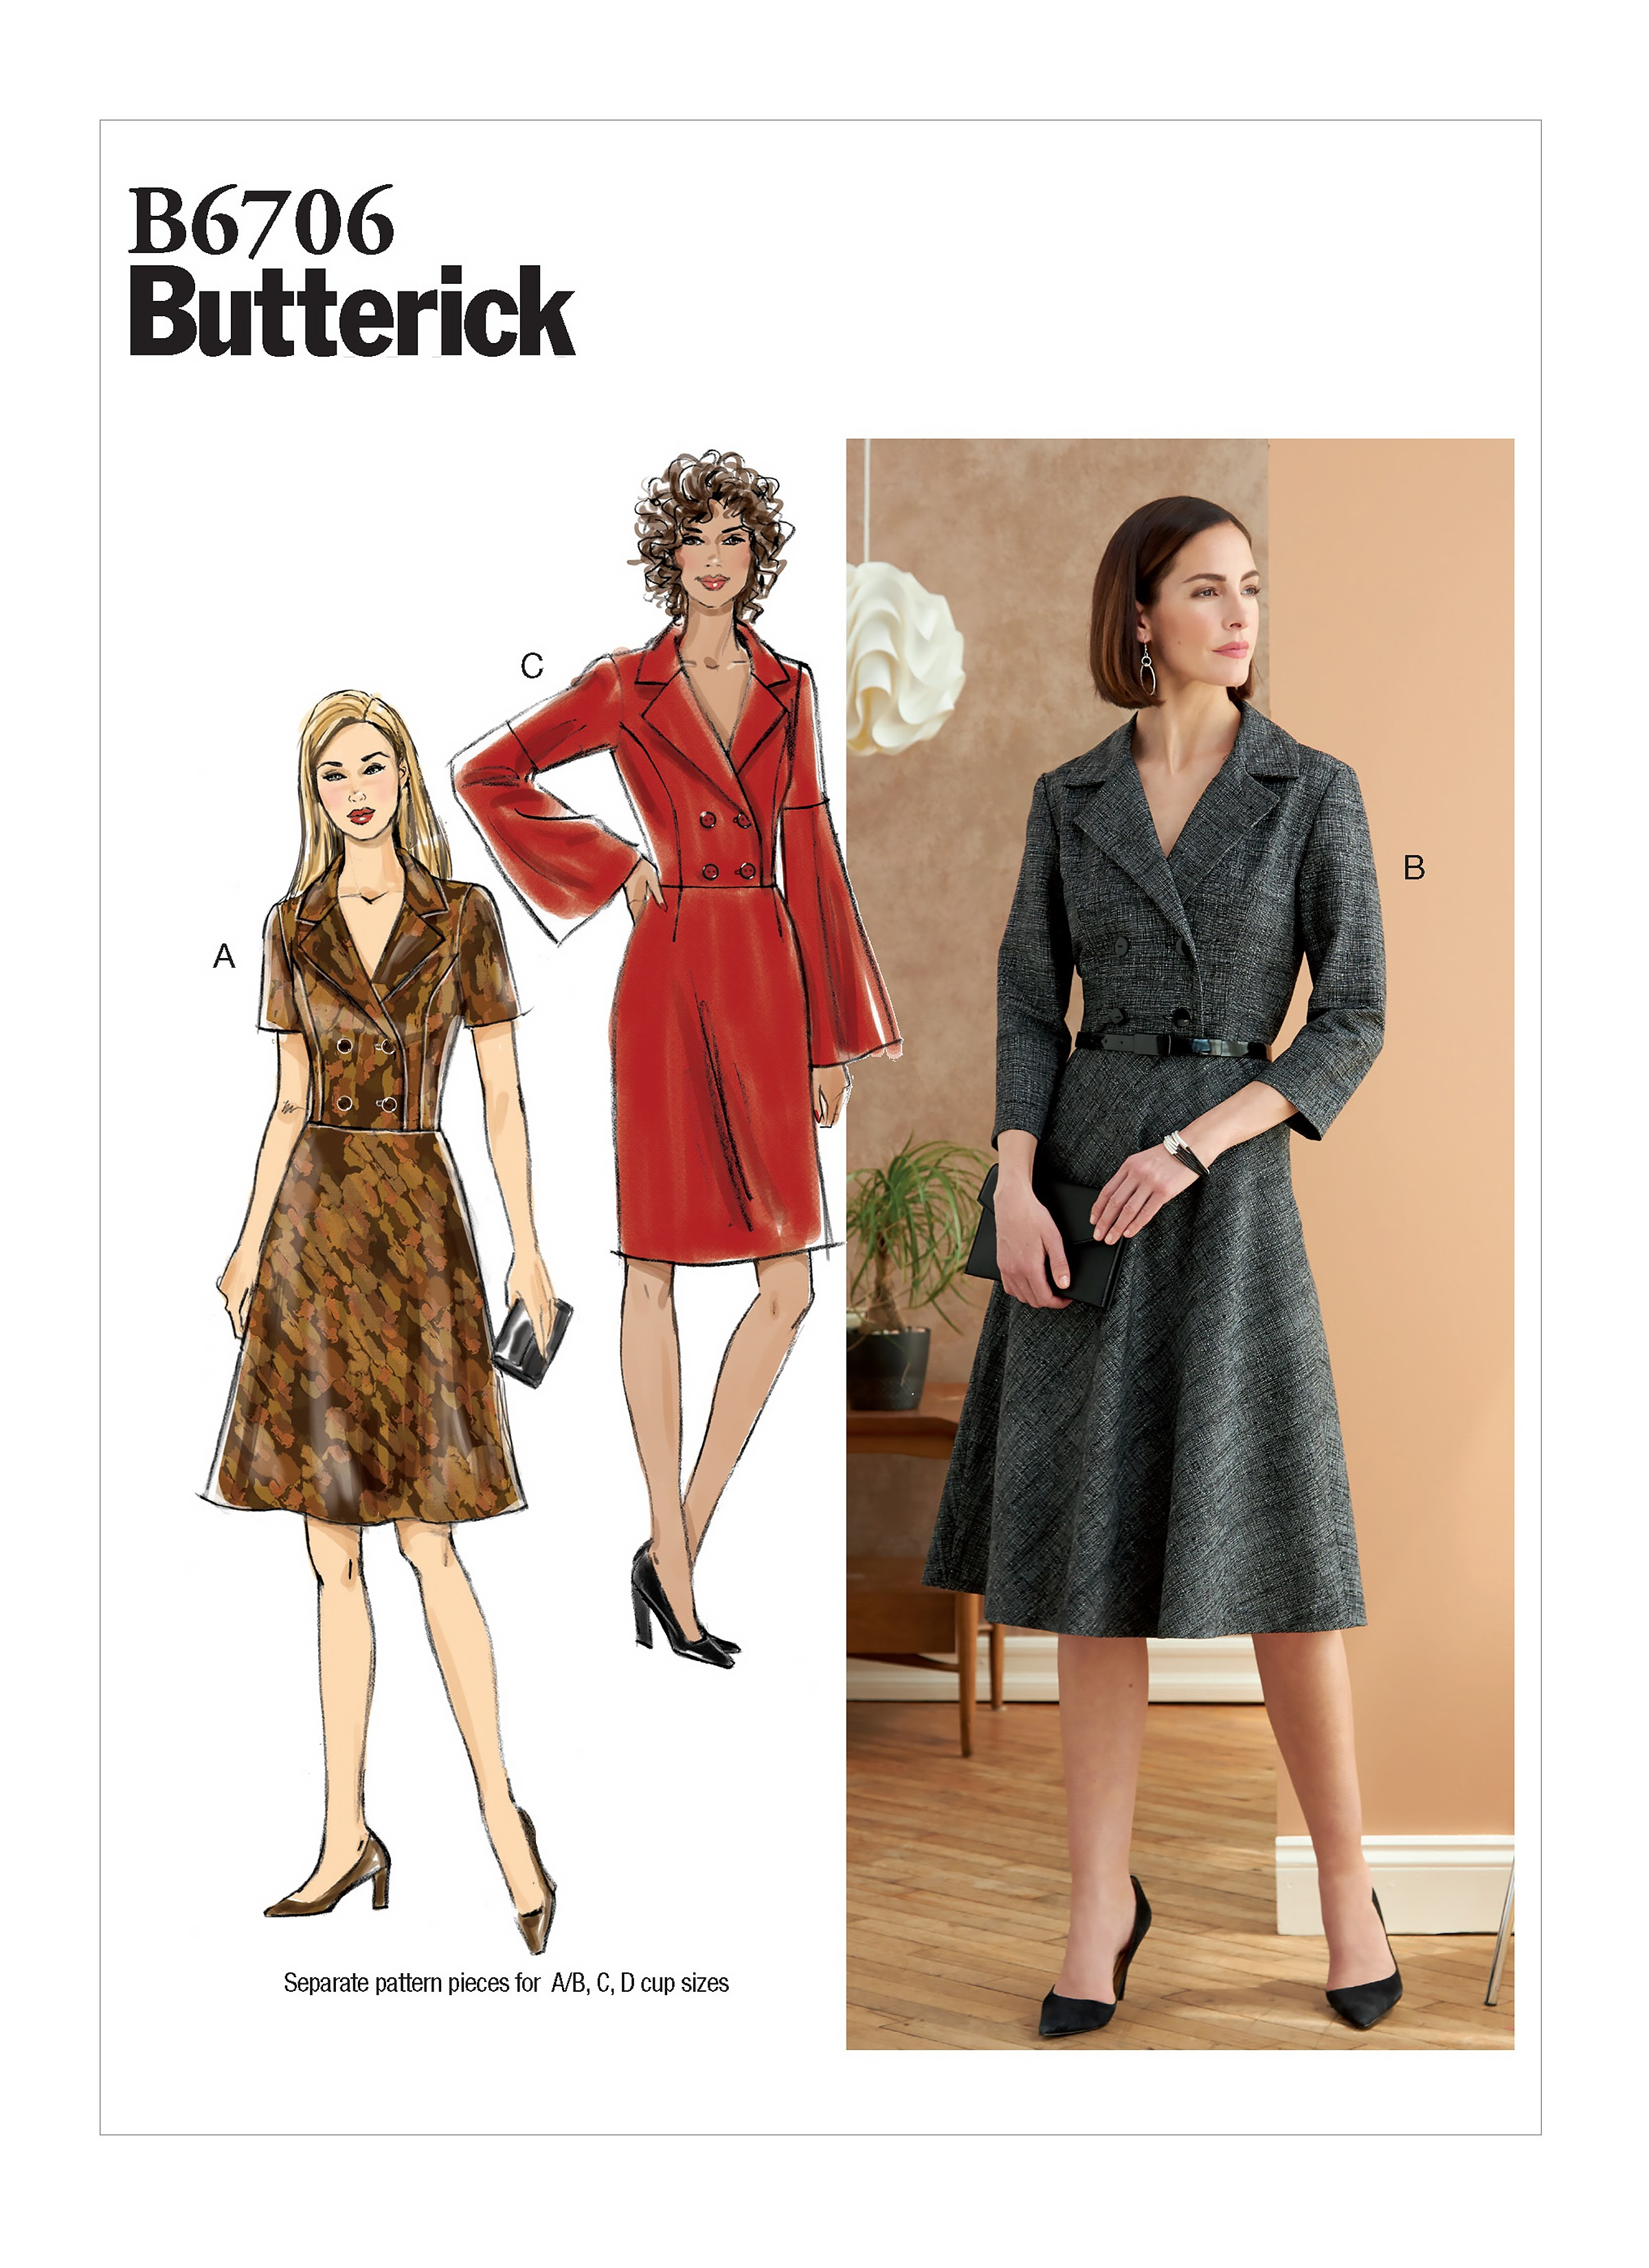 Butterick Sewing Pattern B6706 Misses' Buttoned Up Dress